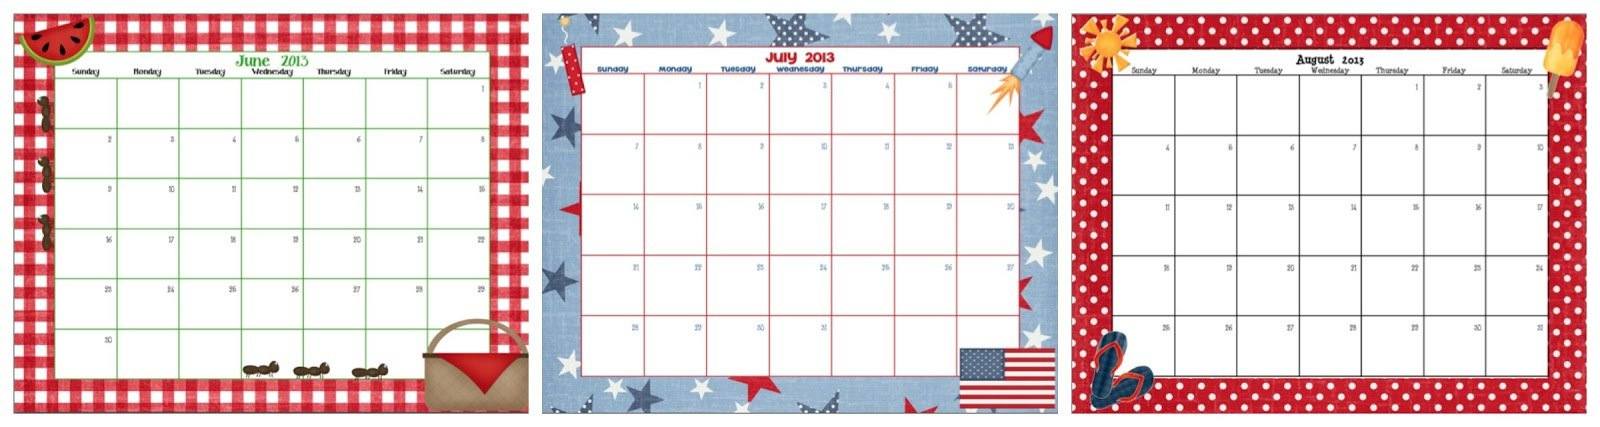 Total Tippins Takeover: Summer Schedules And Activities Blank Calendar To Fill In Activities